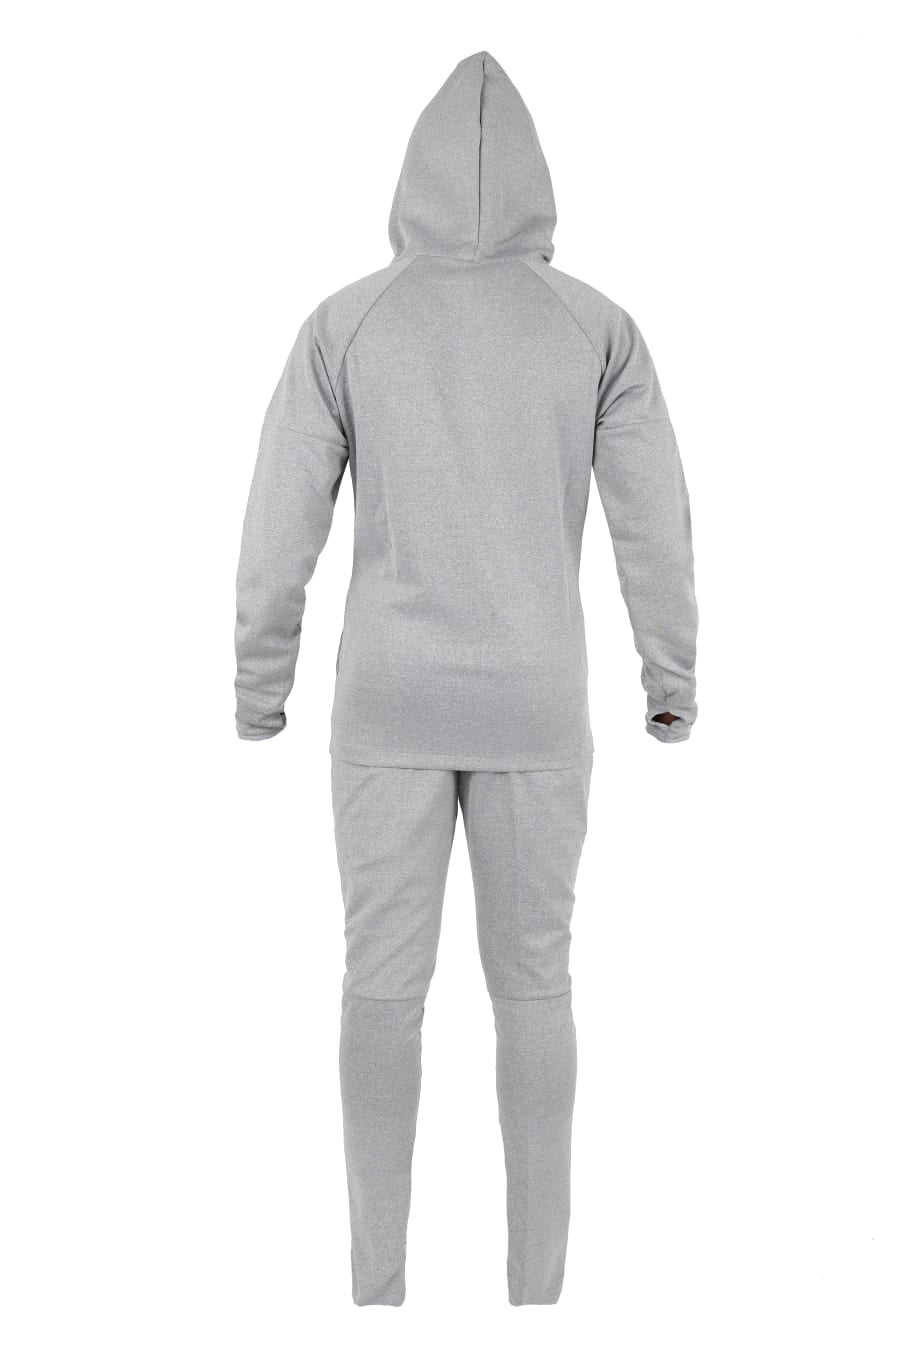 GiG Light Grey Full Tracksuit